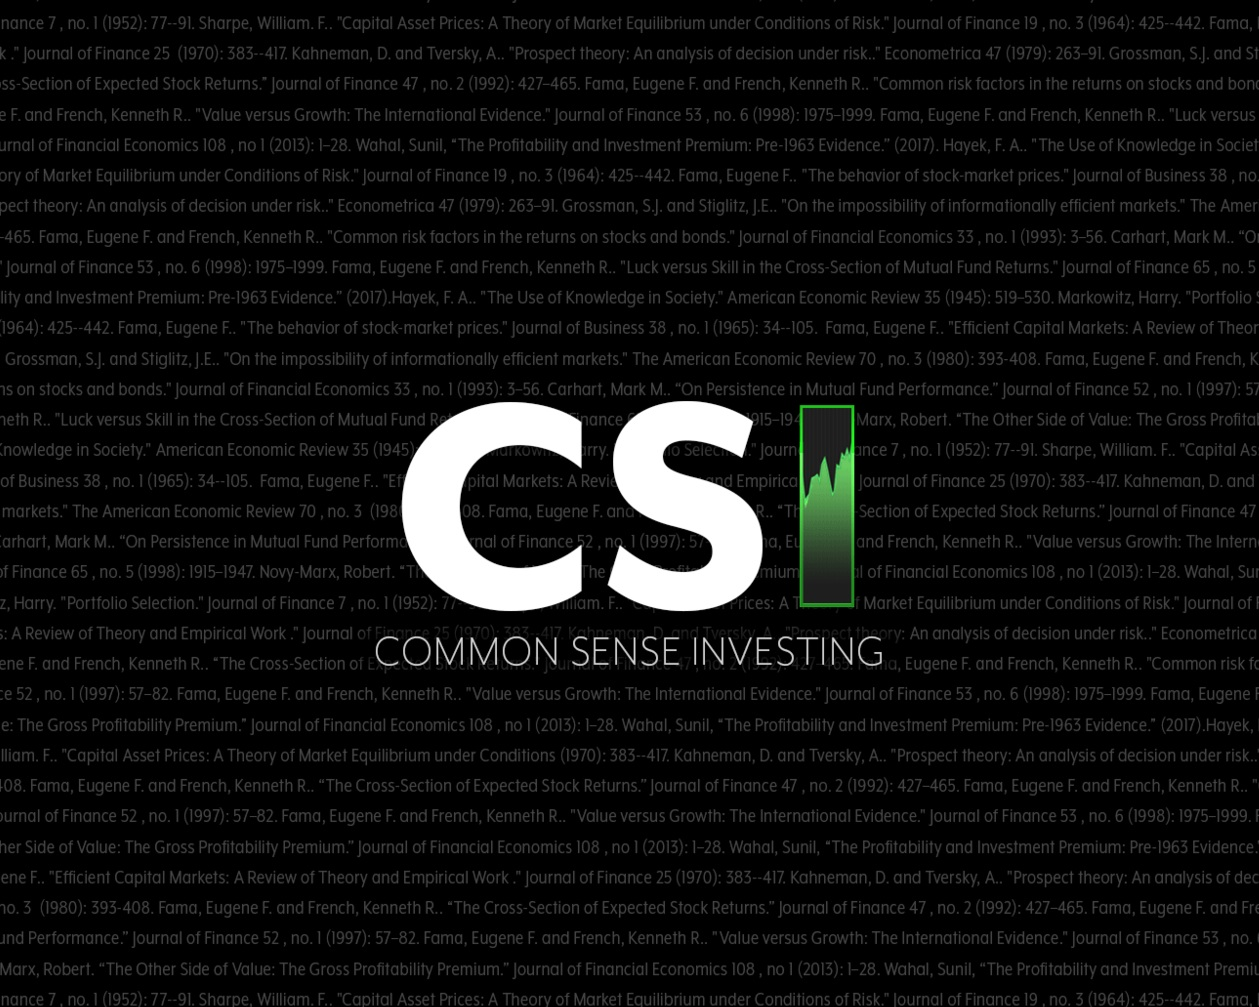 new_logo_CSI_FINAL_YT_V5.jpg